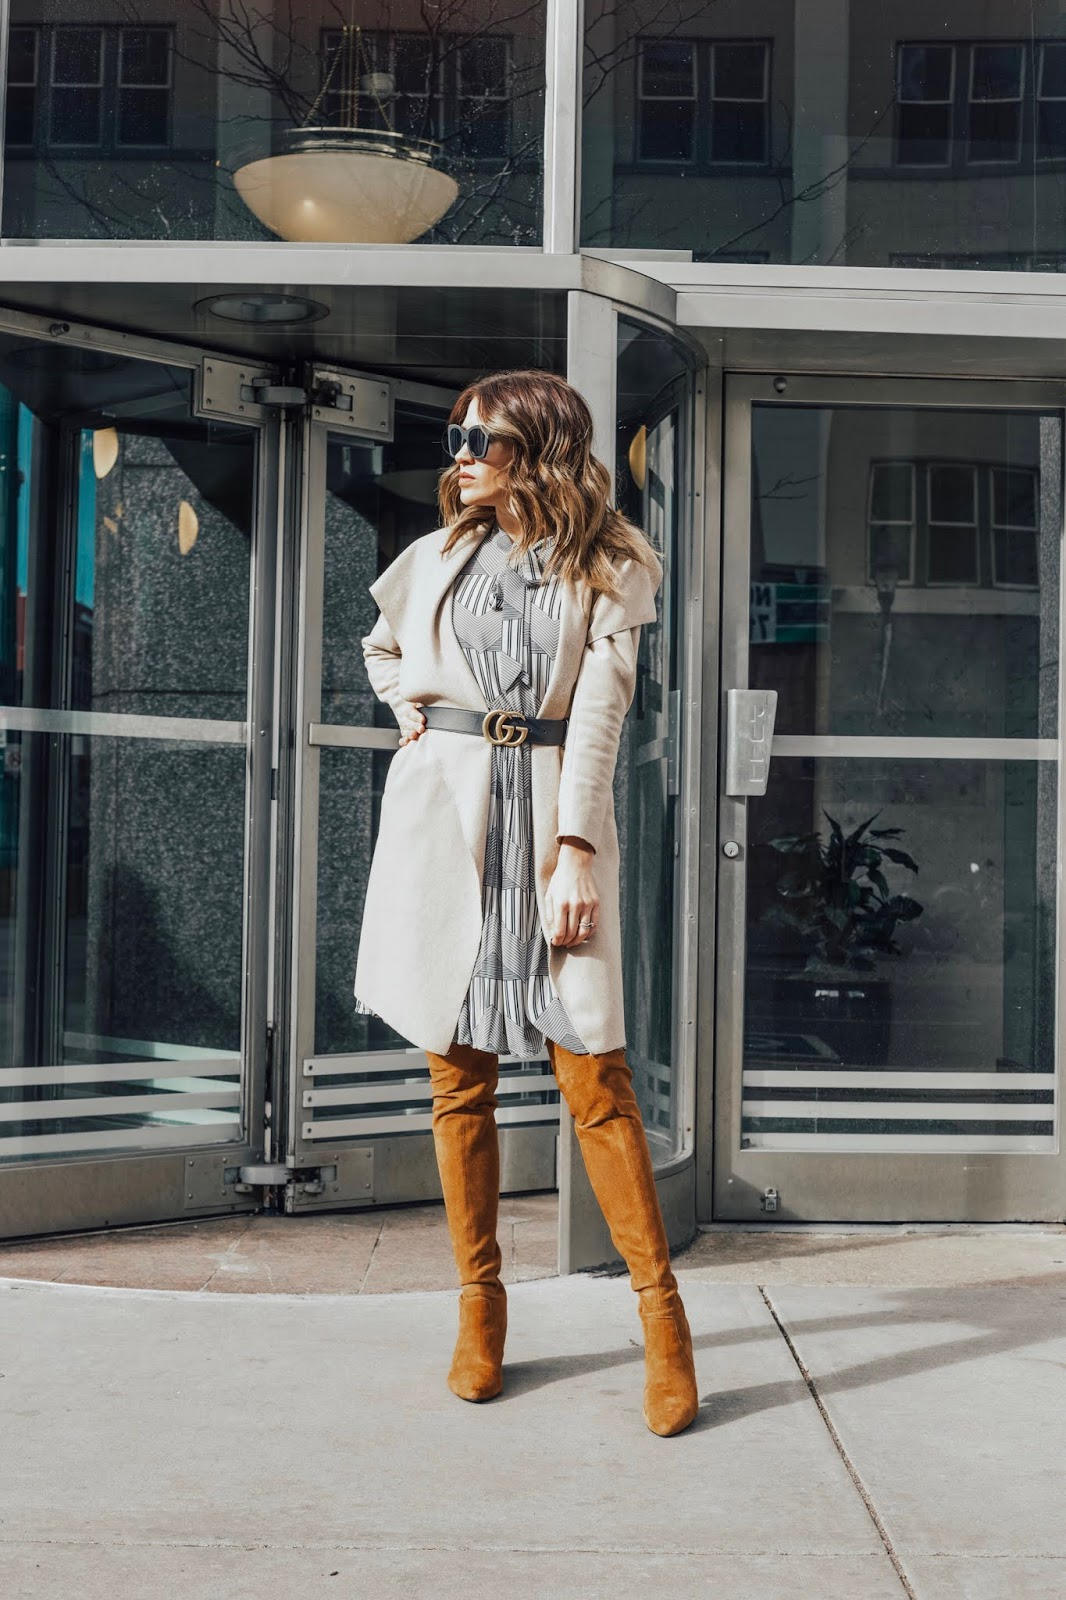 How To Style A Dress When It's Cold